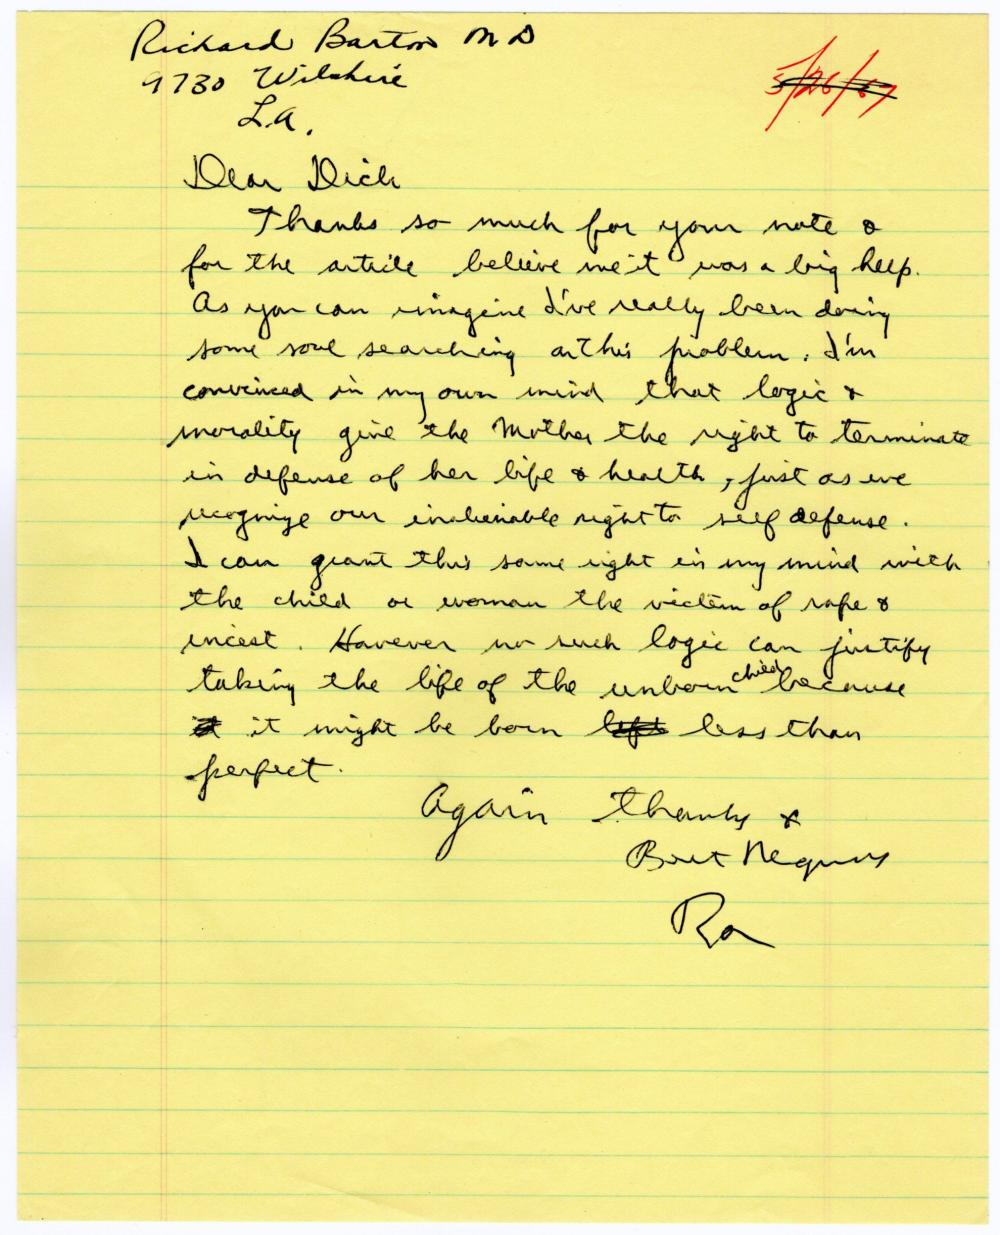 Fantastic Reagan Letter on Abortion